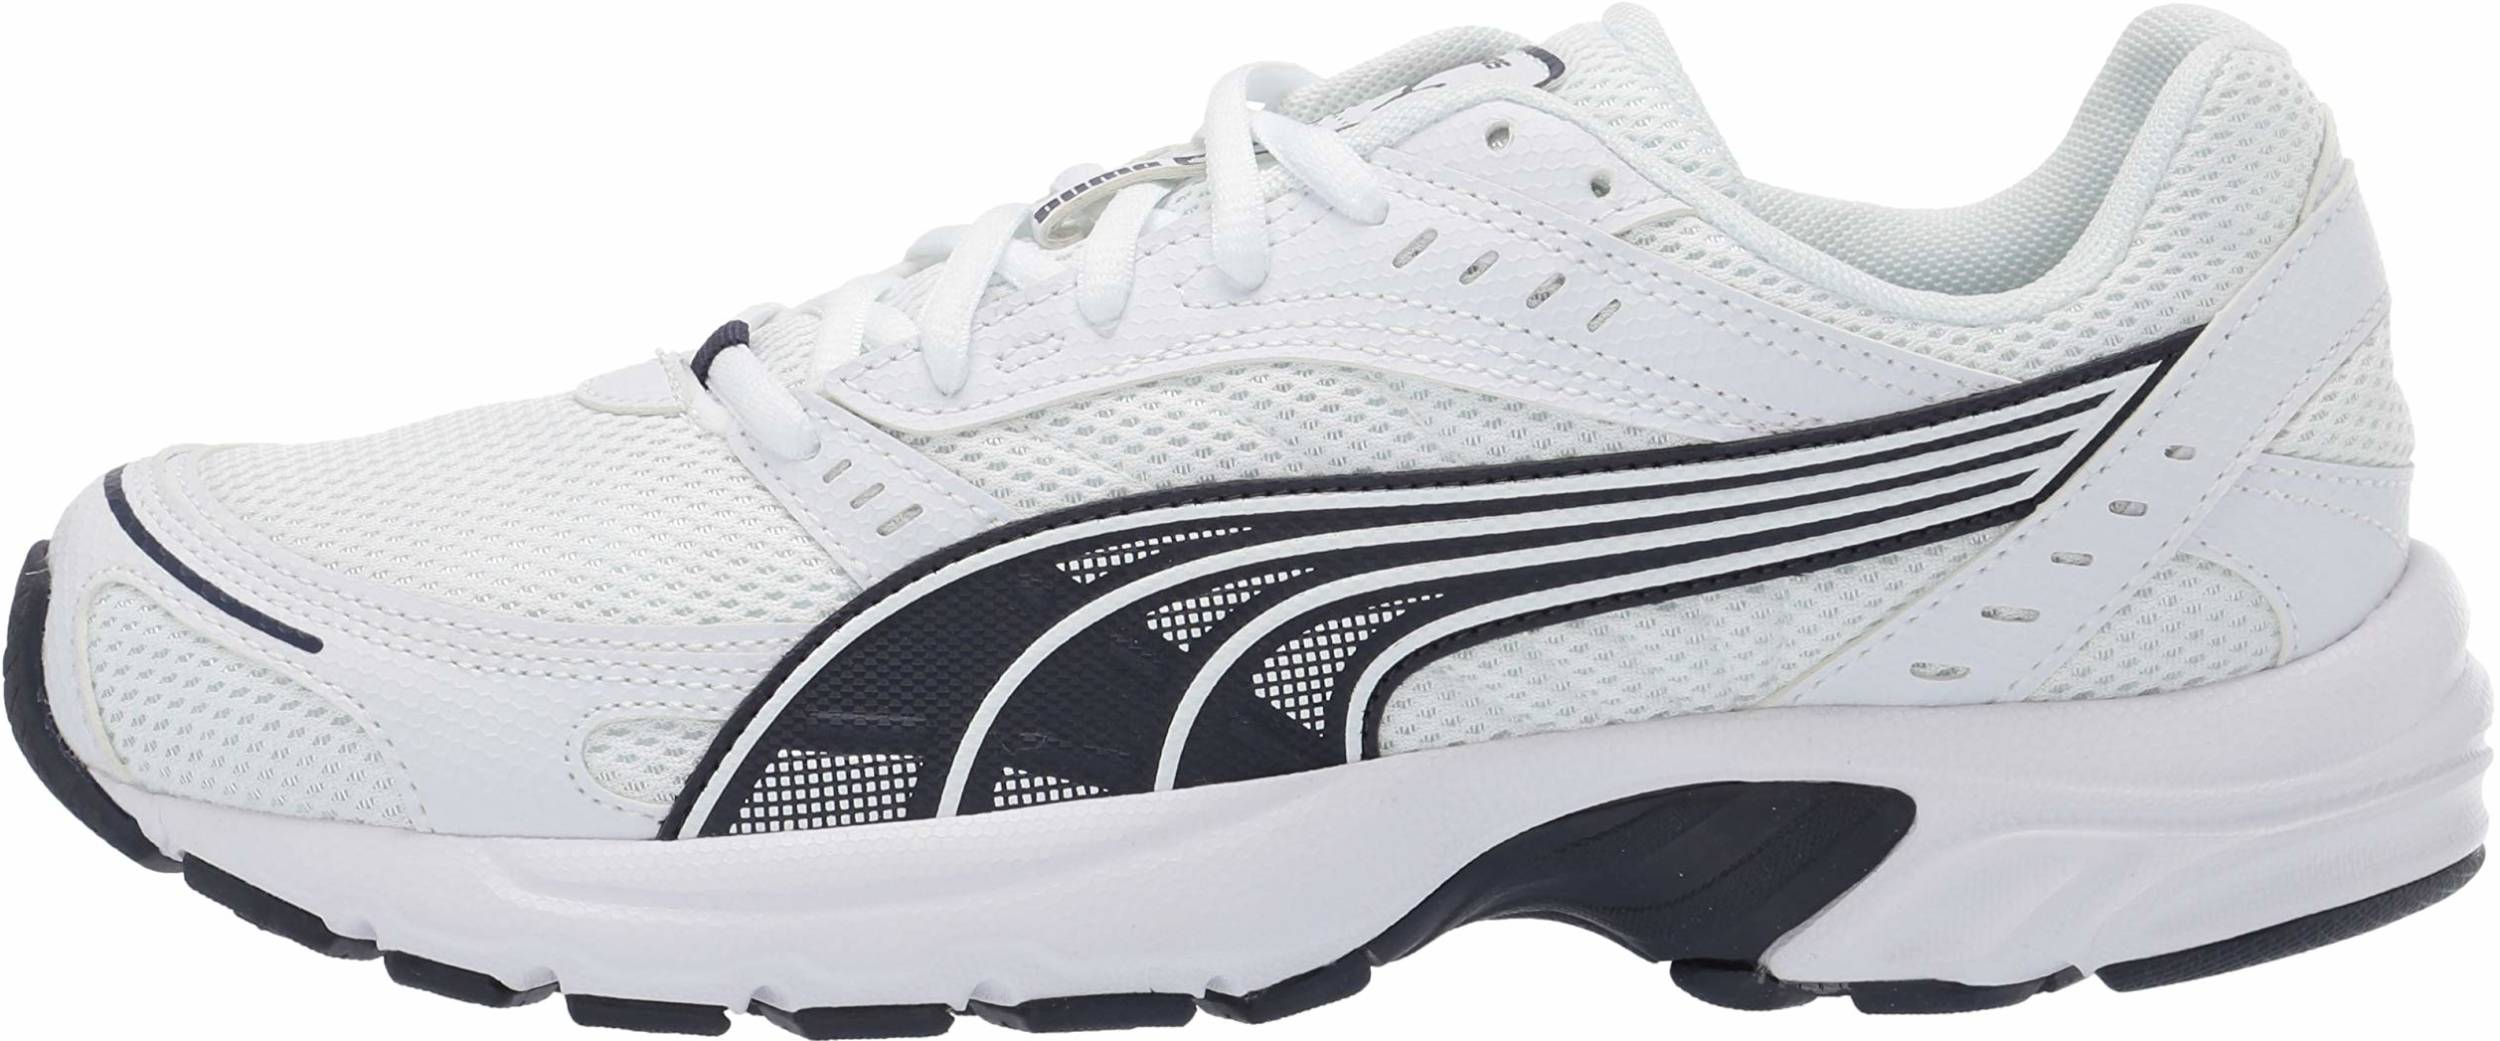 Only $19 + Review of Puma Axis | RunRepeat